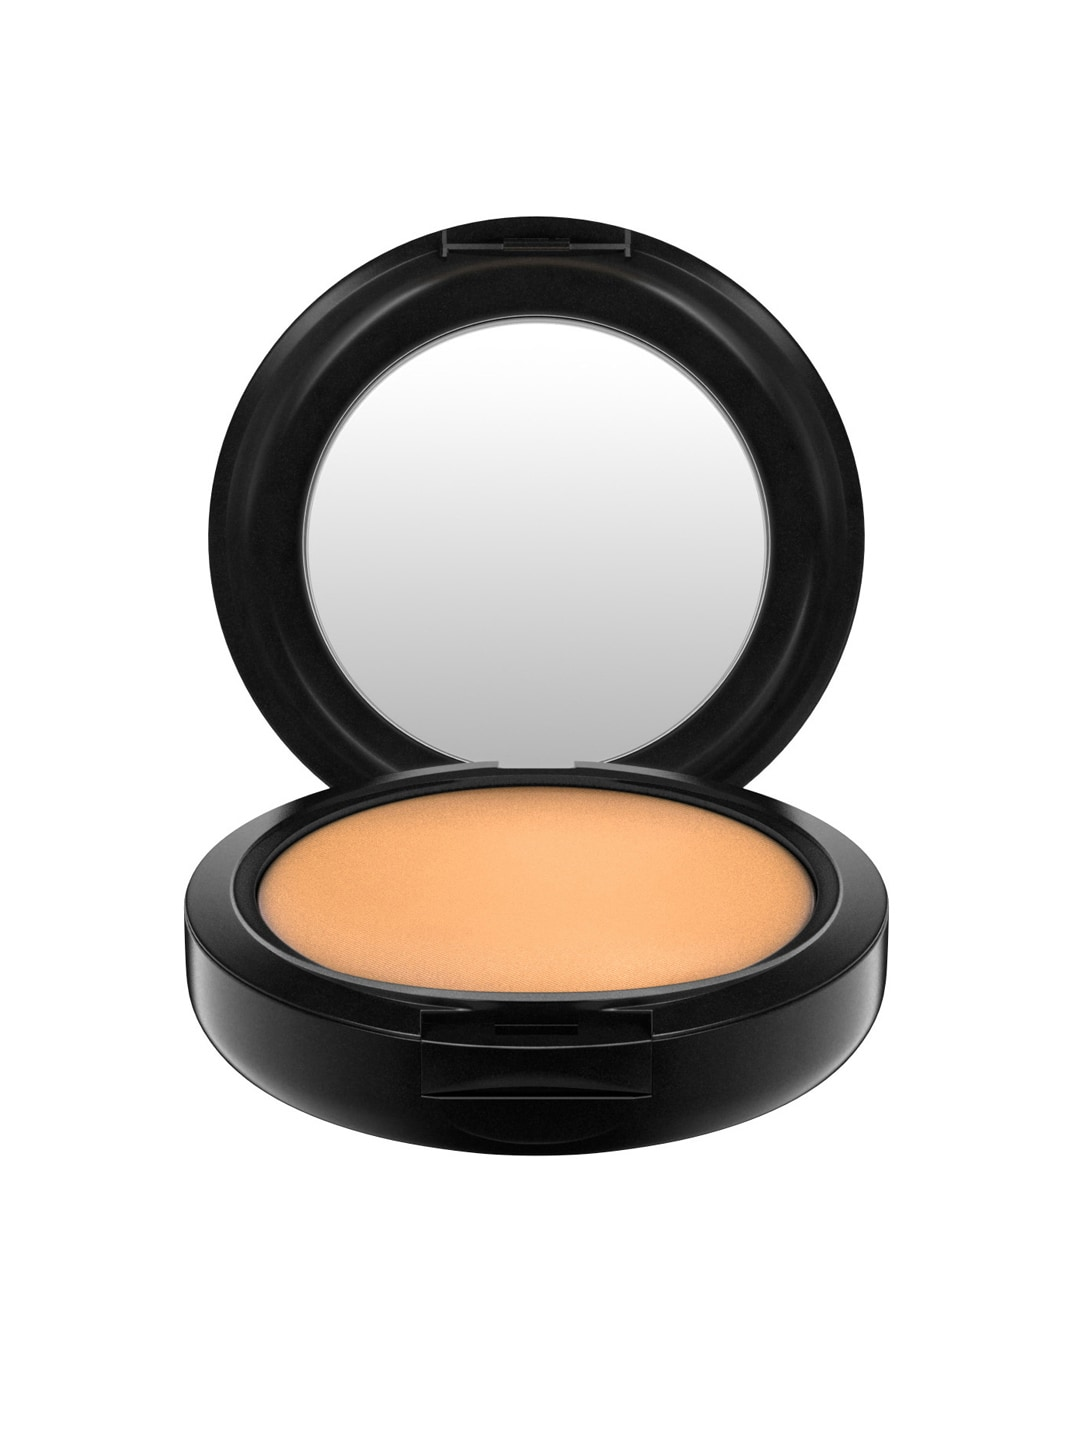 M.A.C NC45 Studio Fix Powder Plus Foundation image